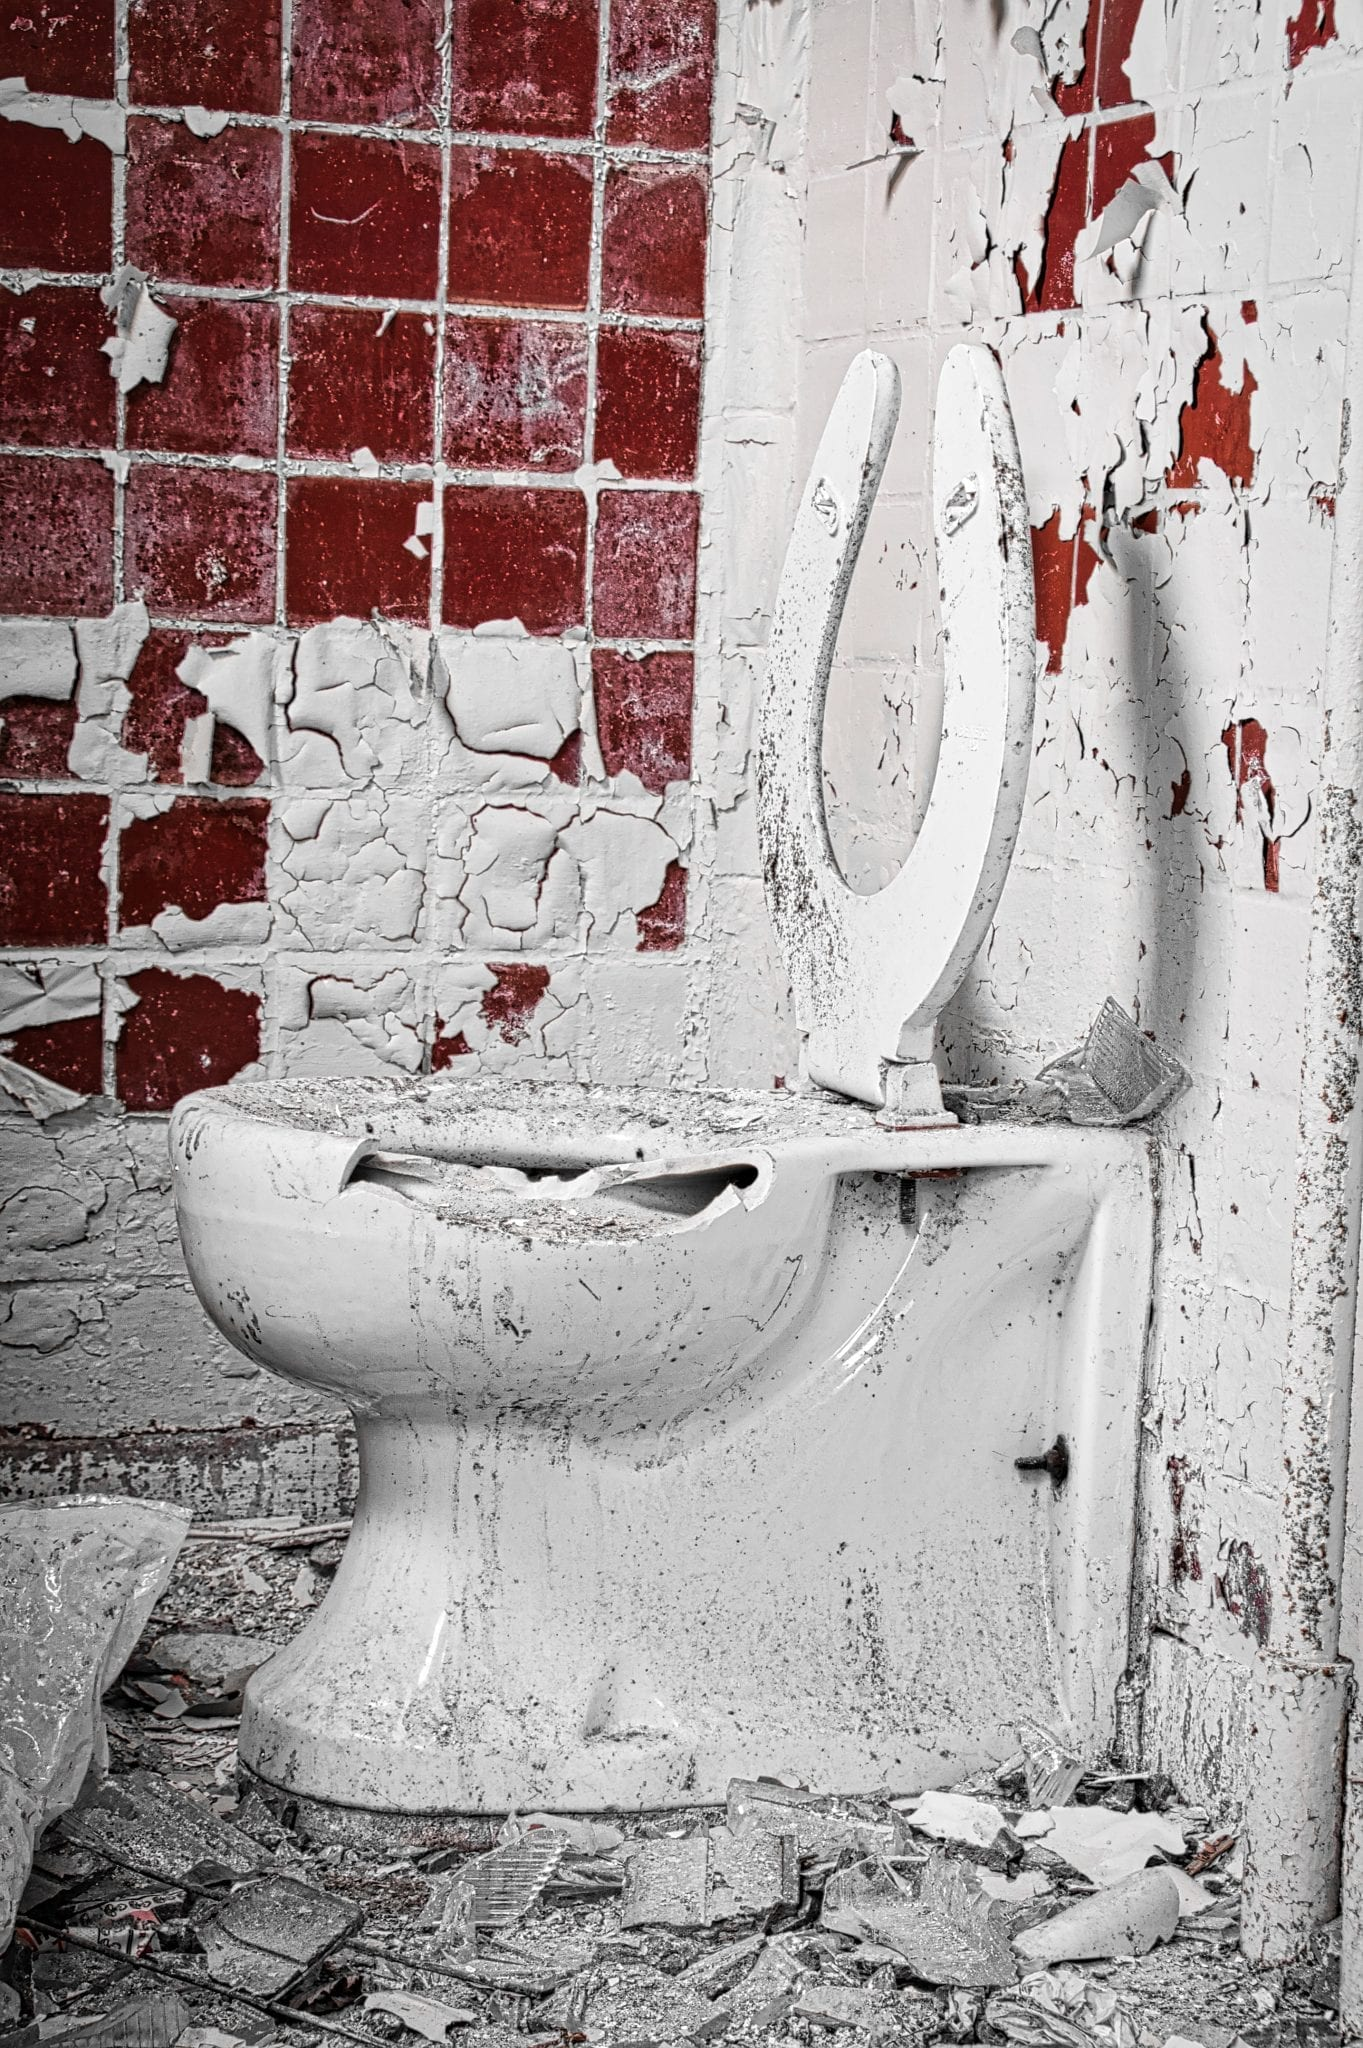 messy and broken toilet